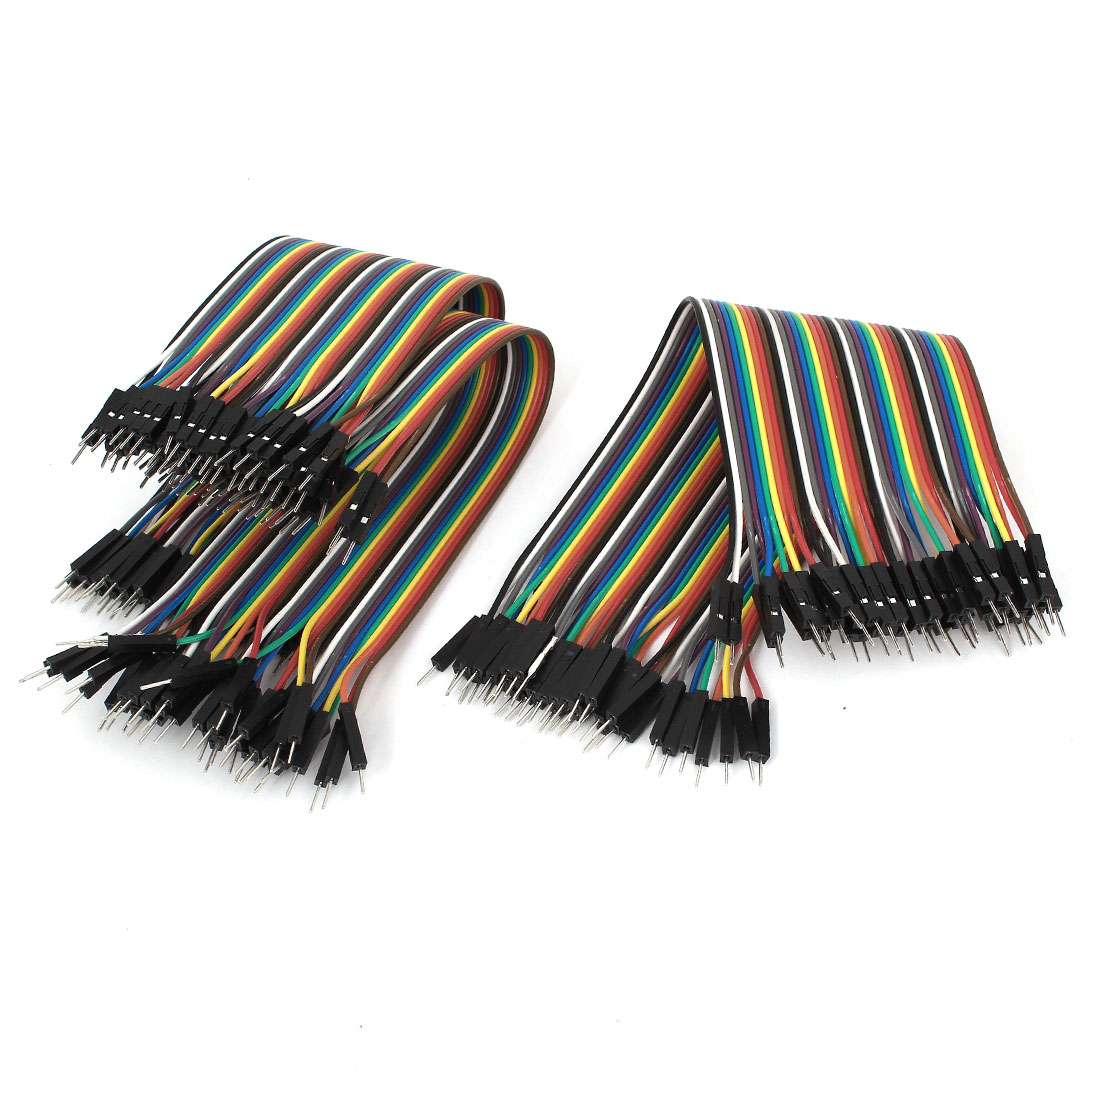 3pcs 40P-40P 40Pin Crimp Terminal Male to Male Pin Connector Jumper Cable Wire Line Colorful 21.5cm